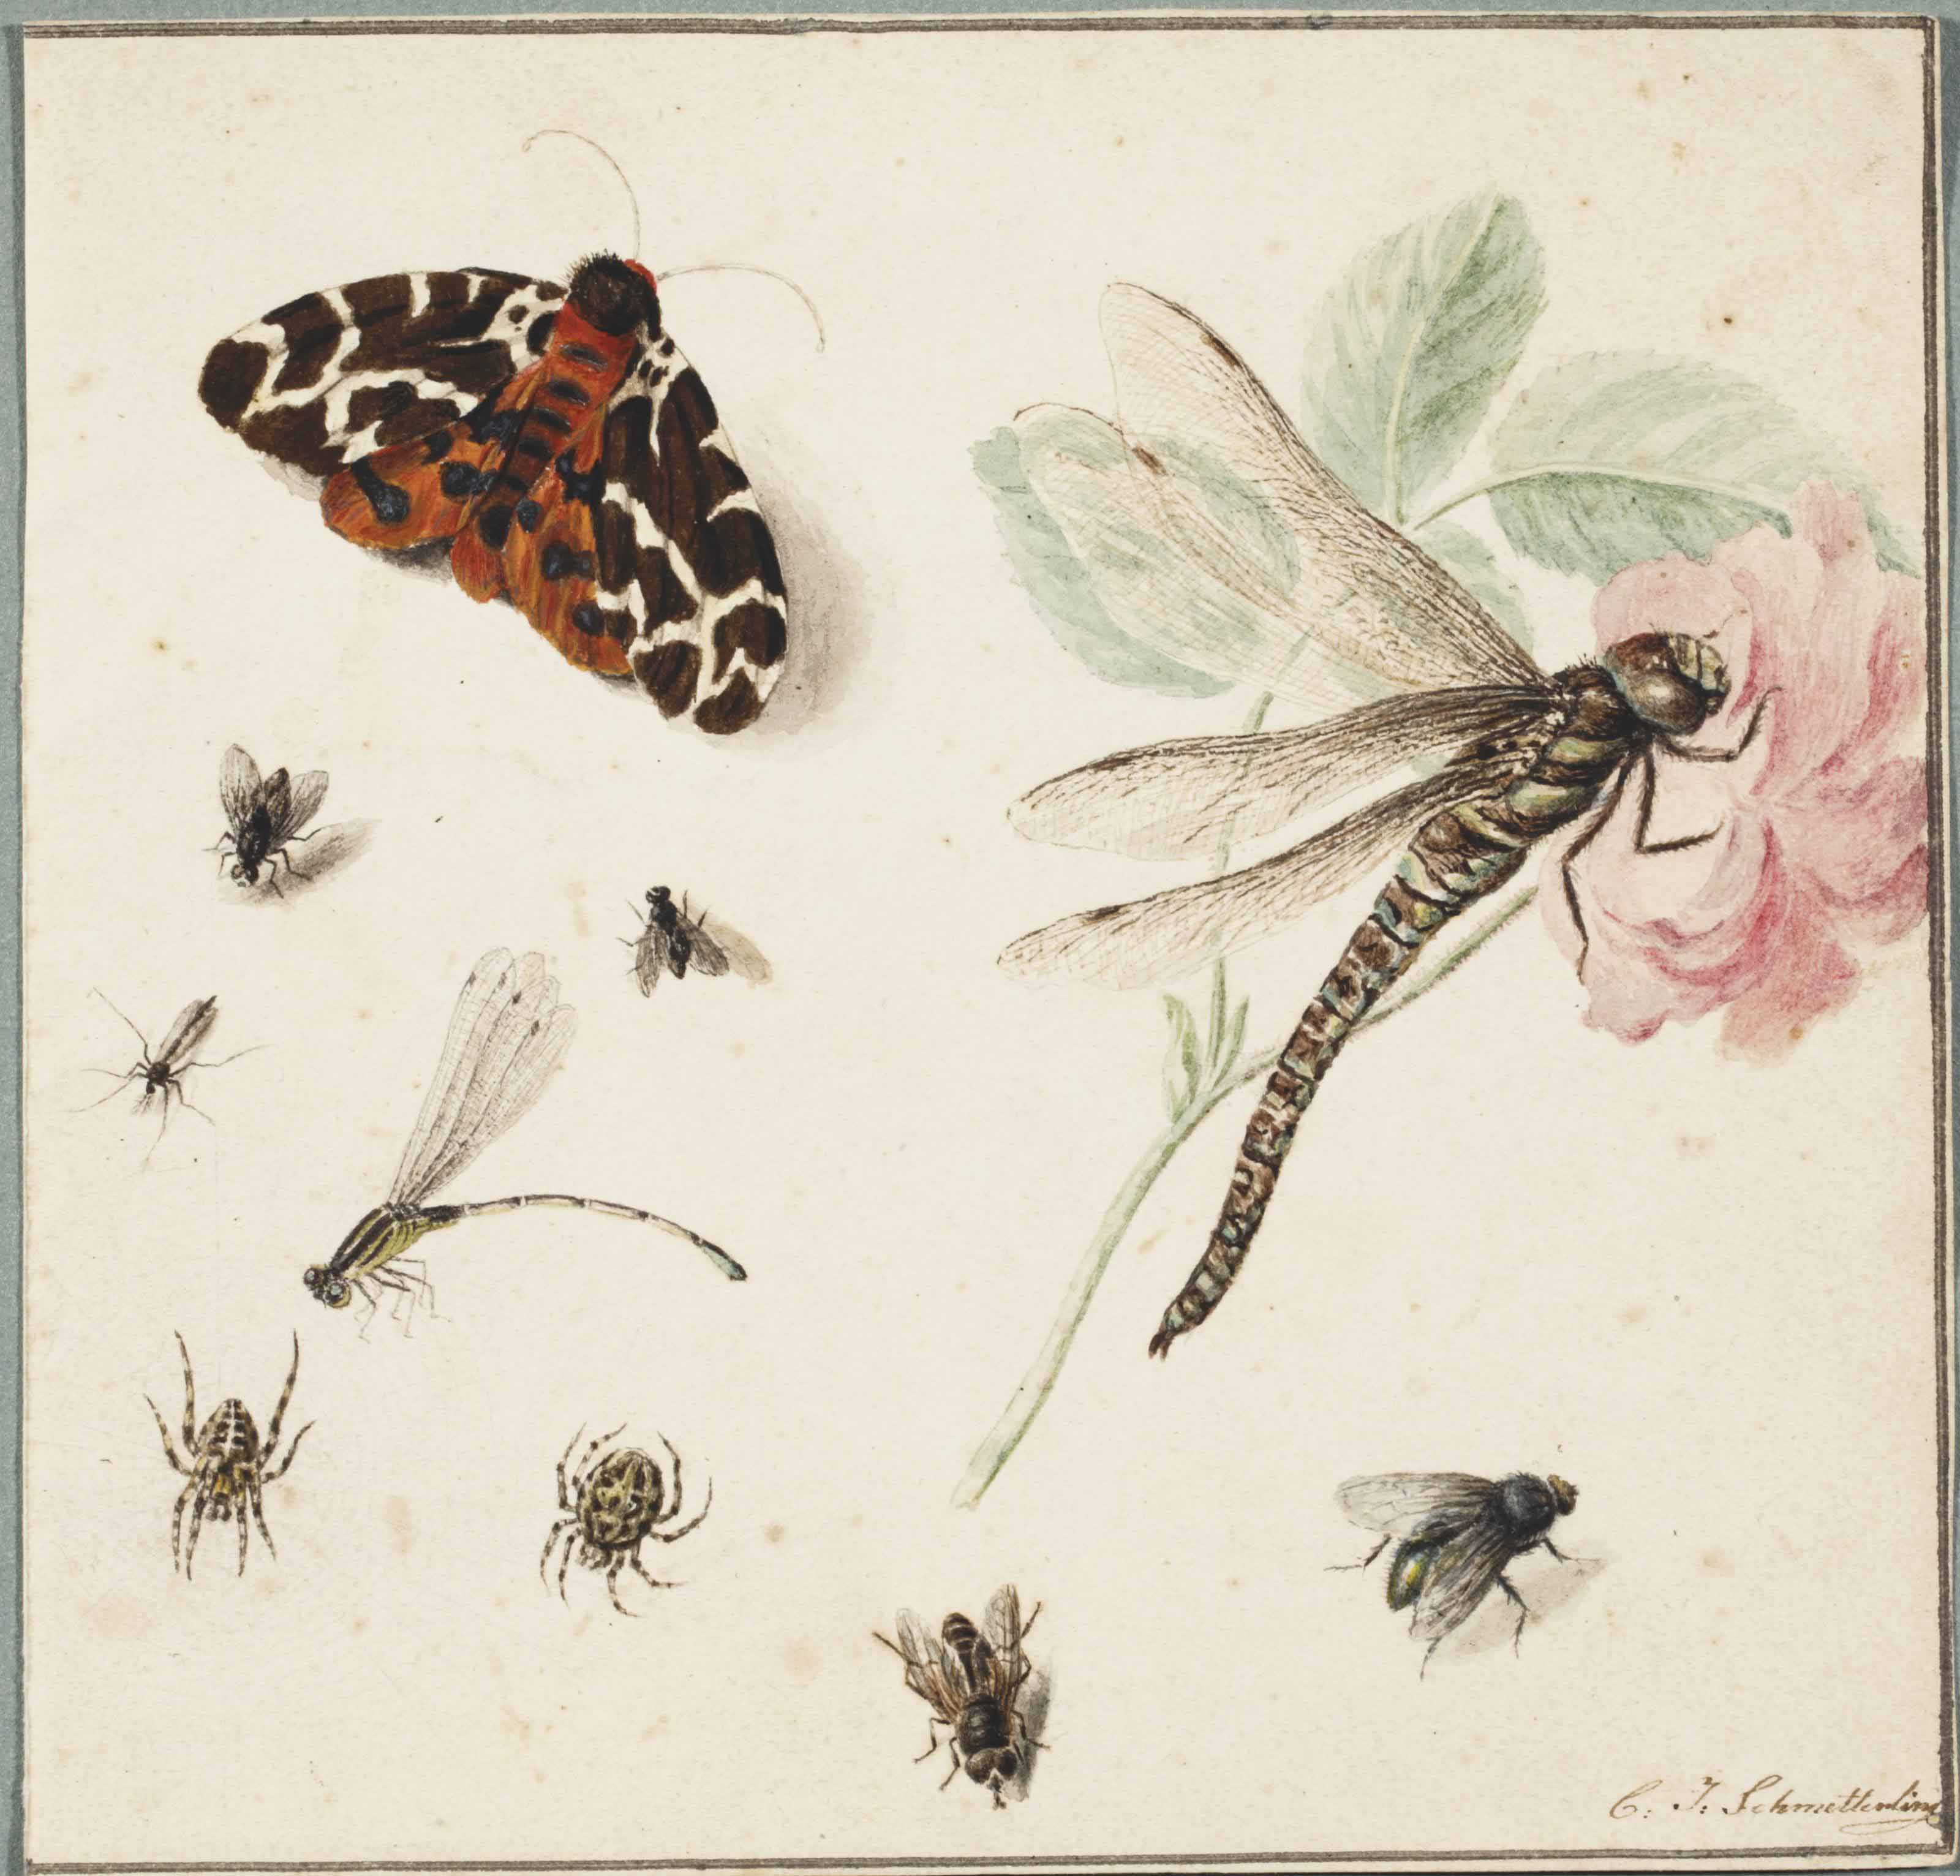 A Tiger-moth, a golden-ringed dragonfly, a darter dragonfly, spiders and flies, and a pink rose